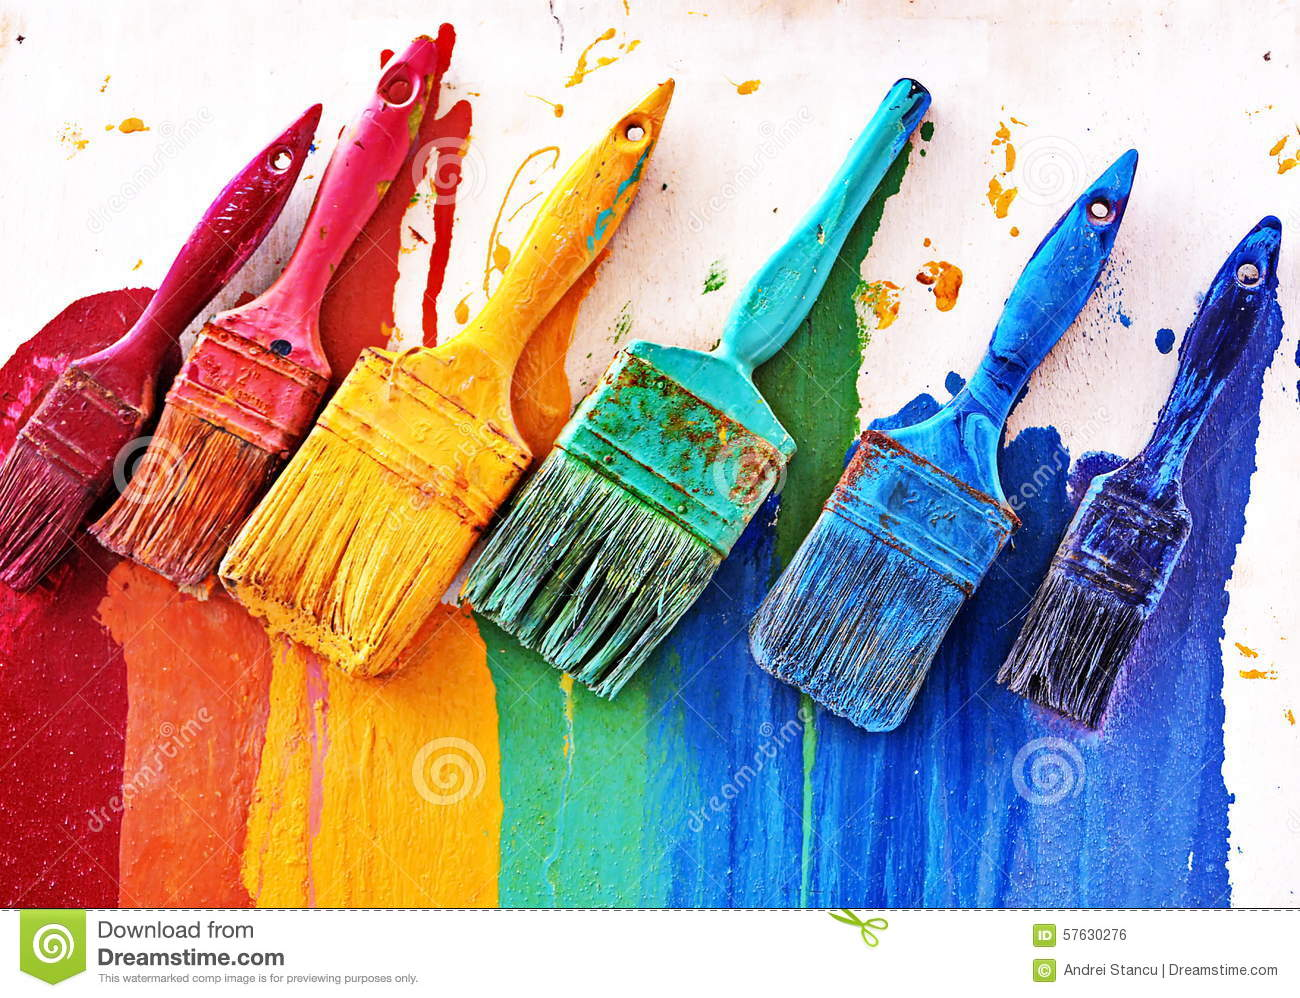 Painting Colors choosing colors stock photo - image: 57630276